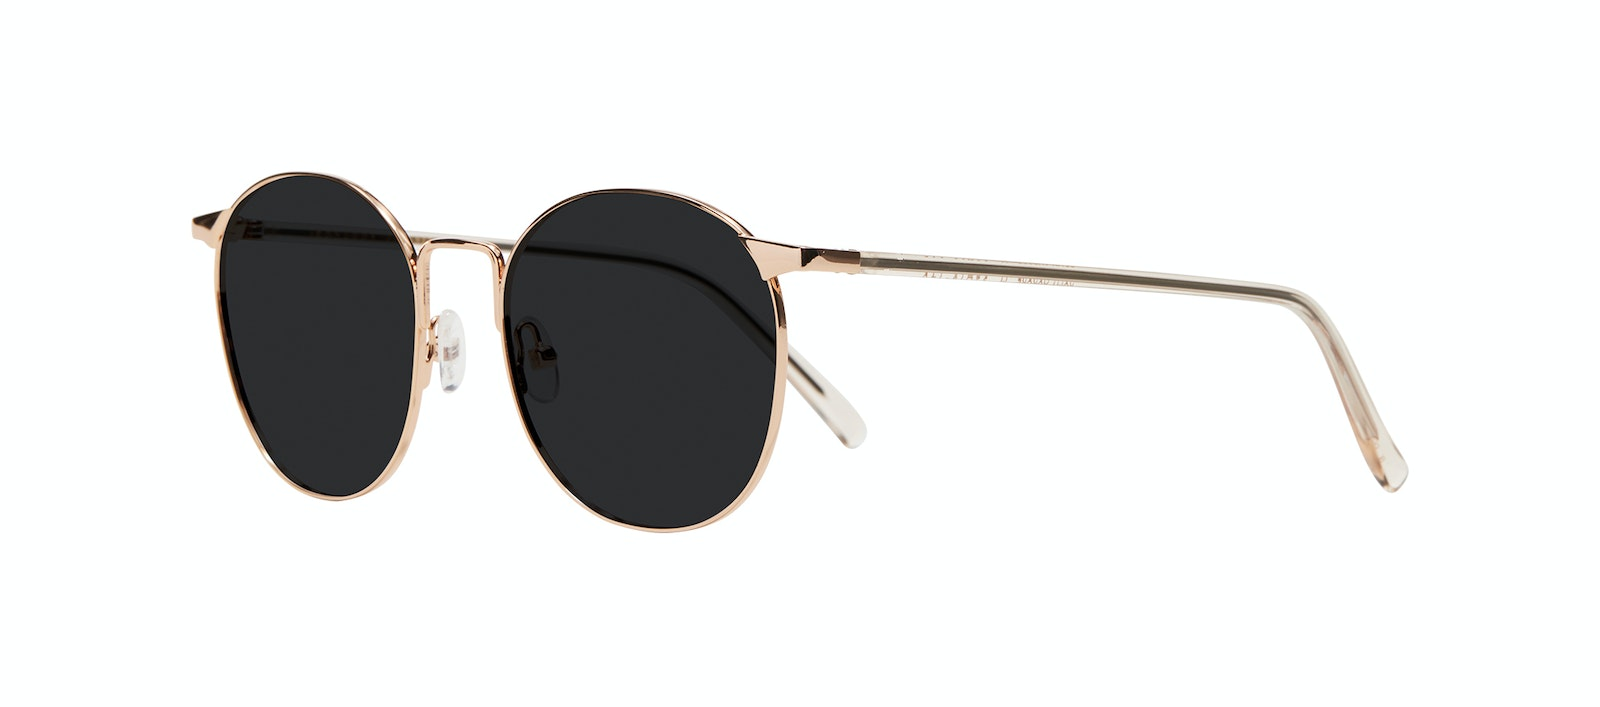 Affordable Fashion Glasses Round Sunglasses Women Romy Aurore Tilt